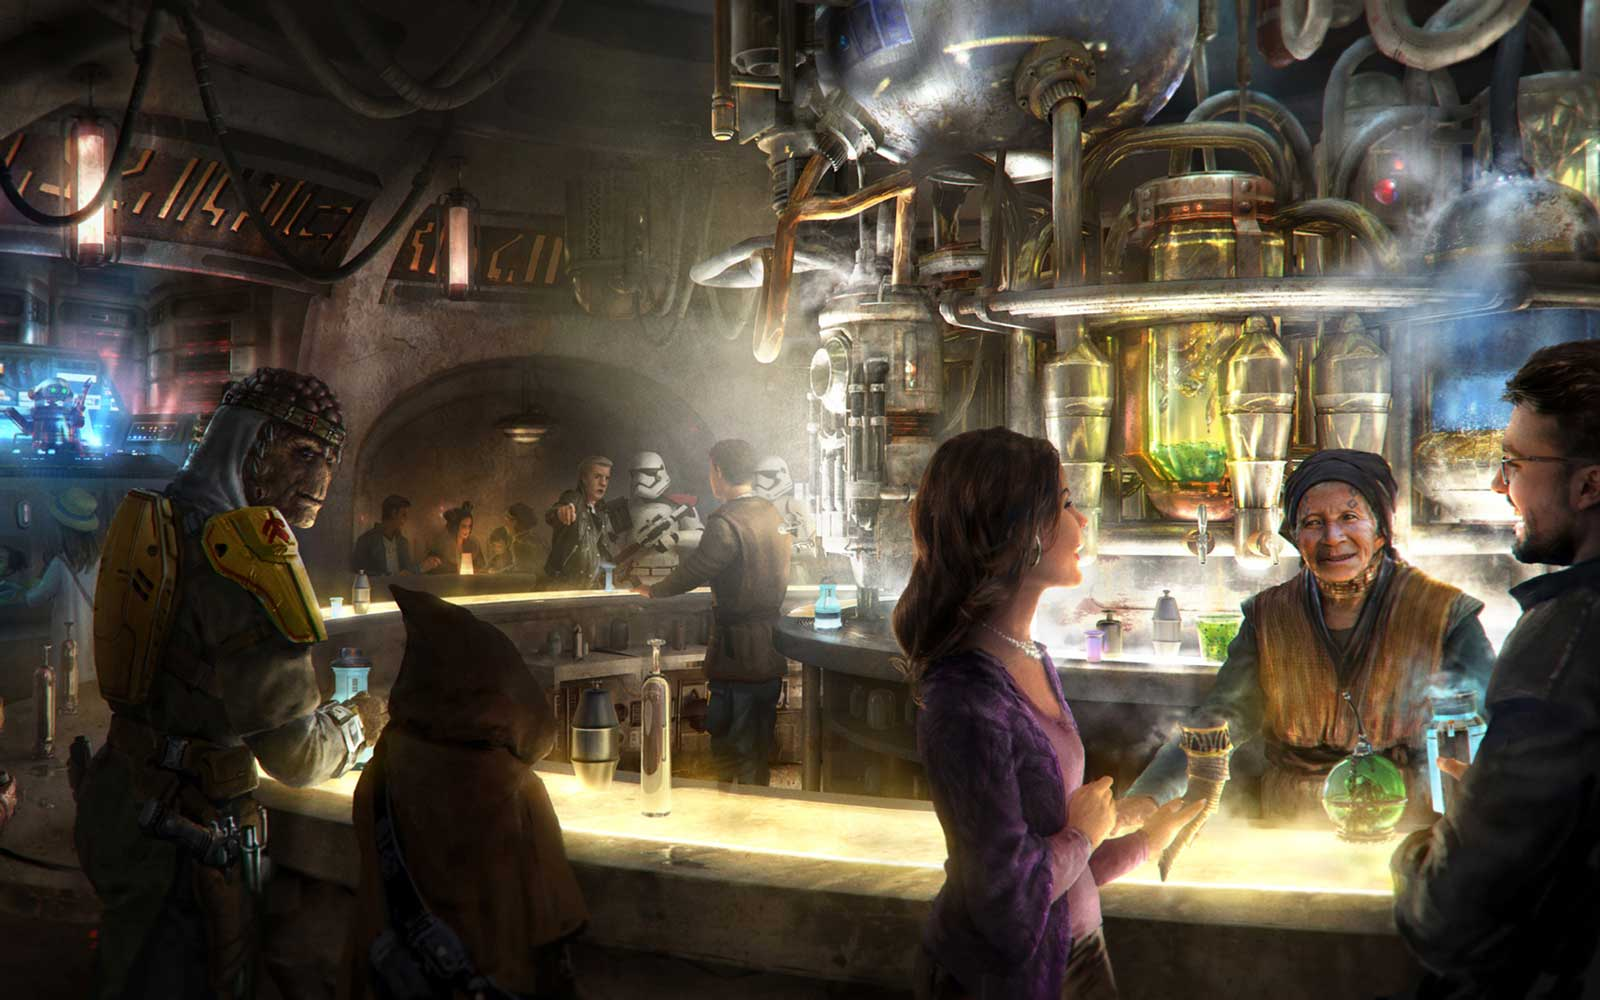 Artist's Concept drawing of Oga's Cantina